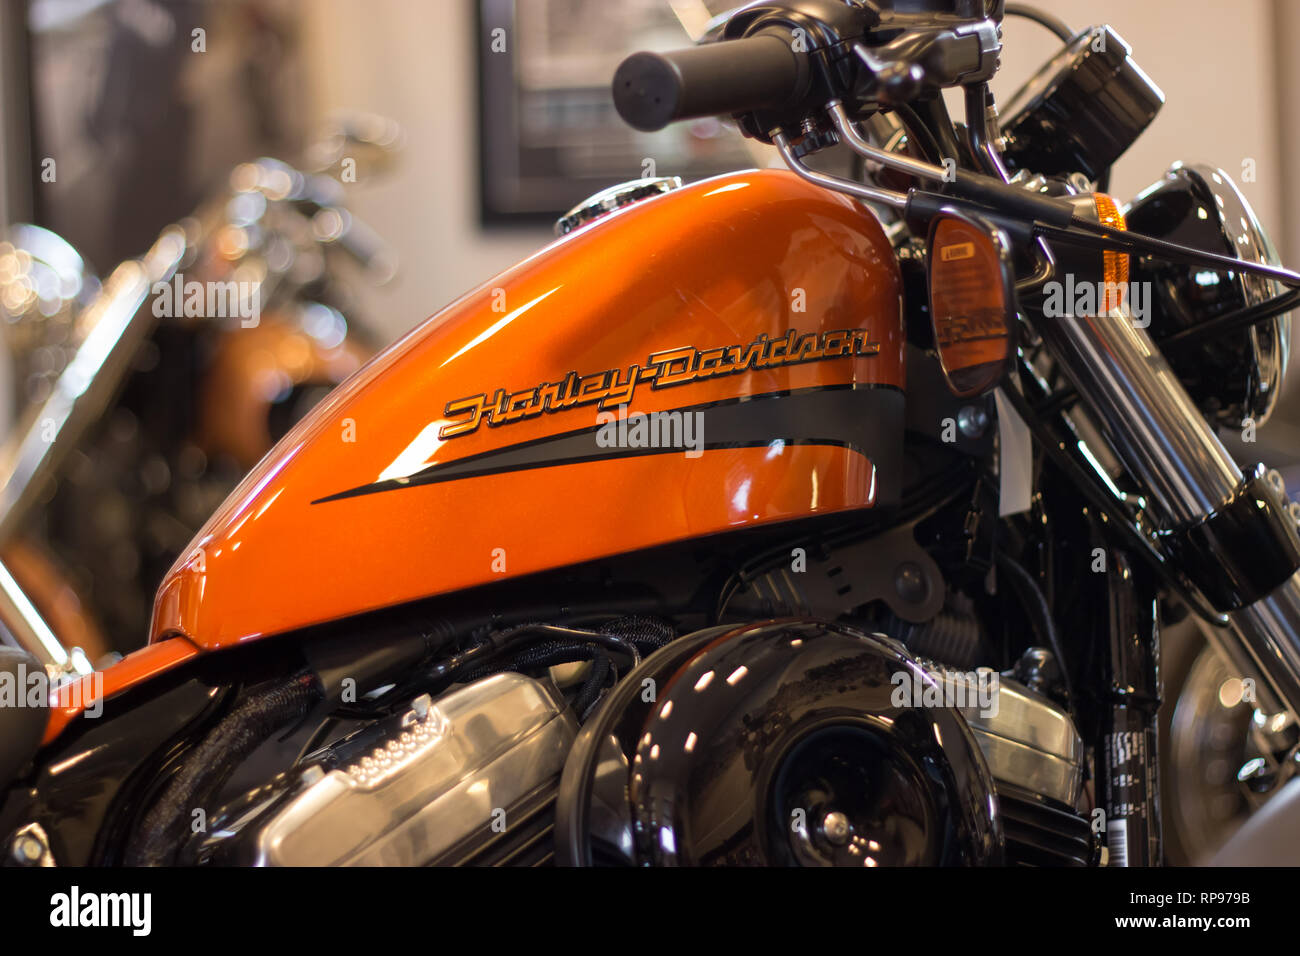 Harley Davidson Sportster High Resolution Stock Photography And Images Alamy